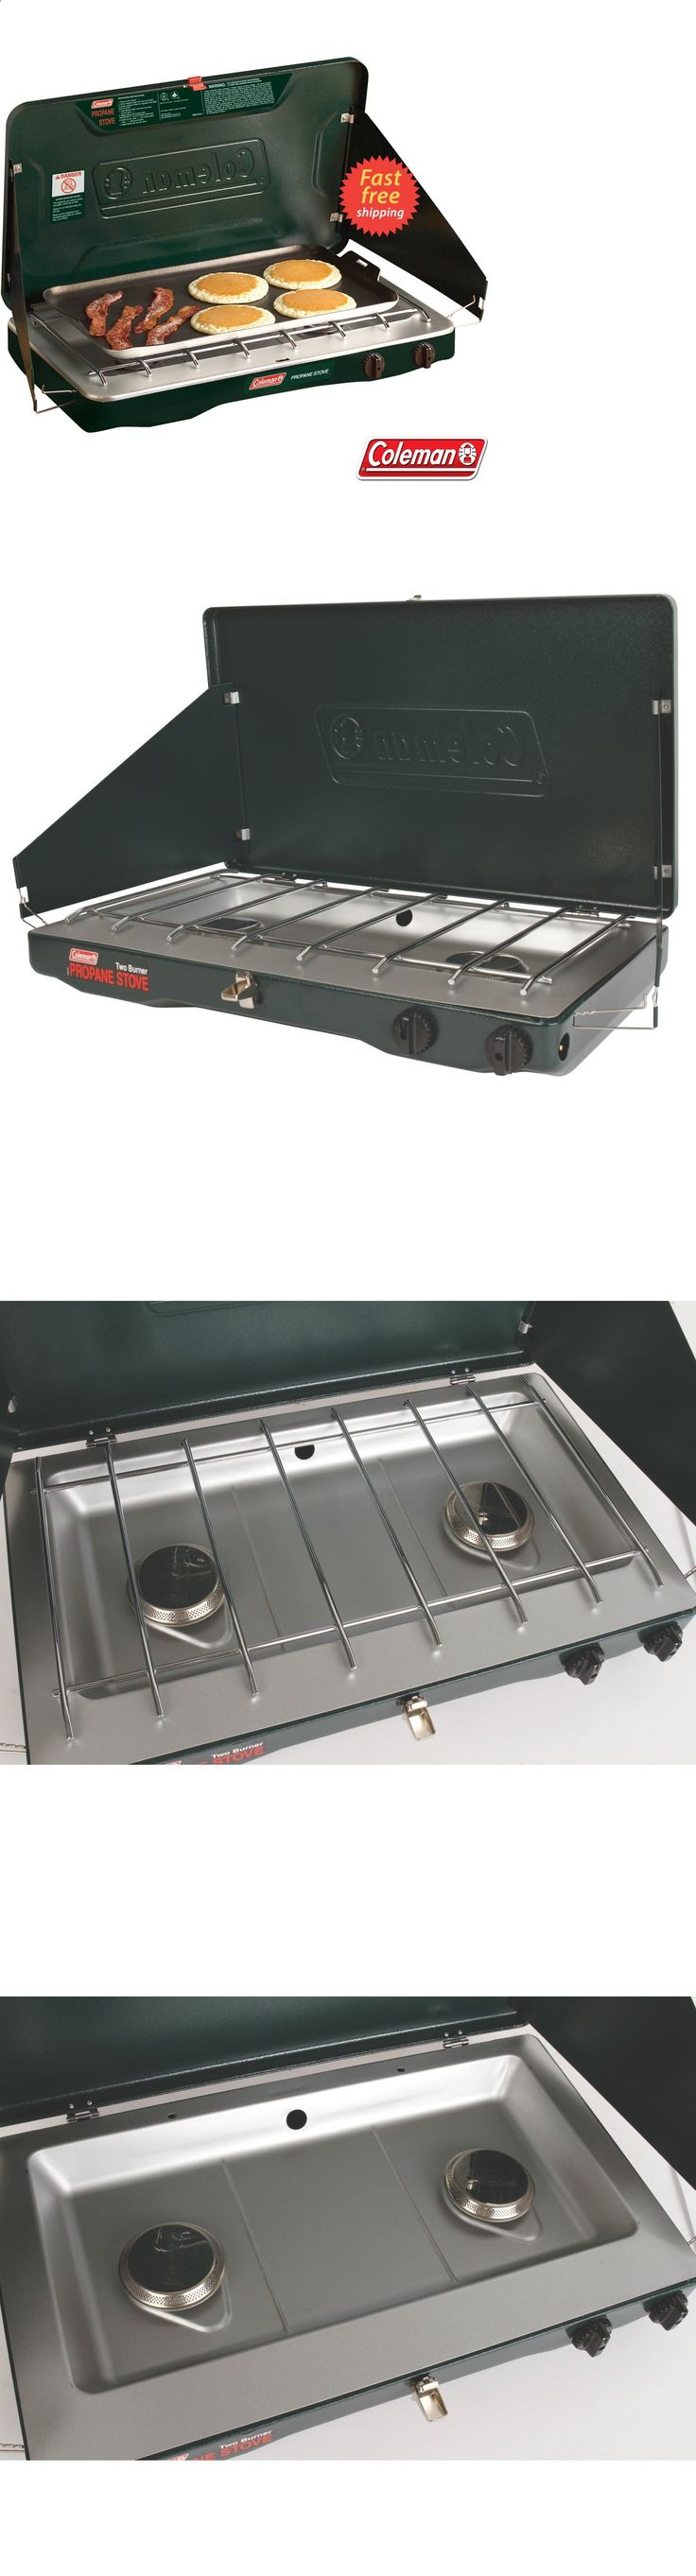 Camping stoves 181386 coleman classic propane stove outdoor 2 burner stove is ideal for